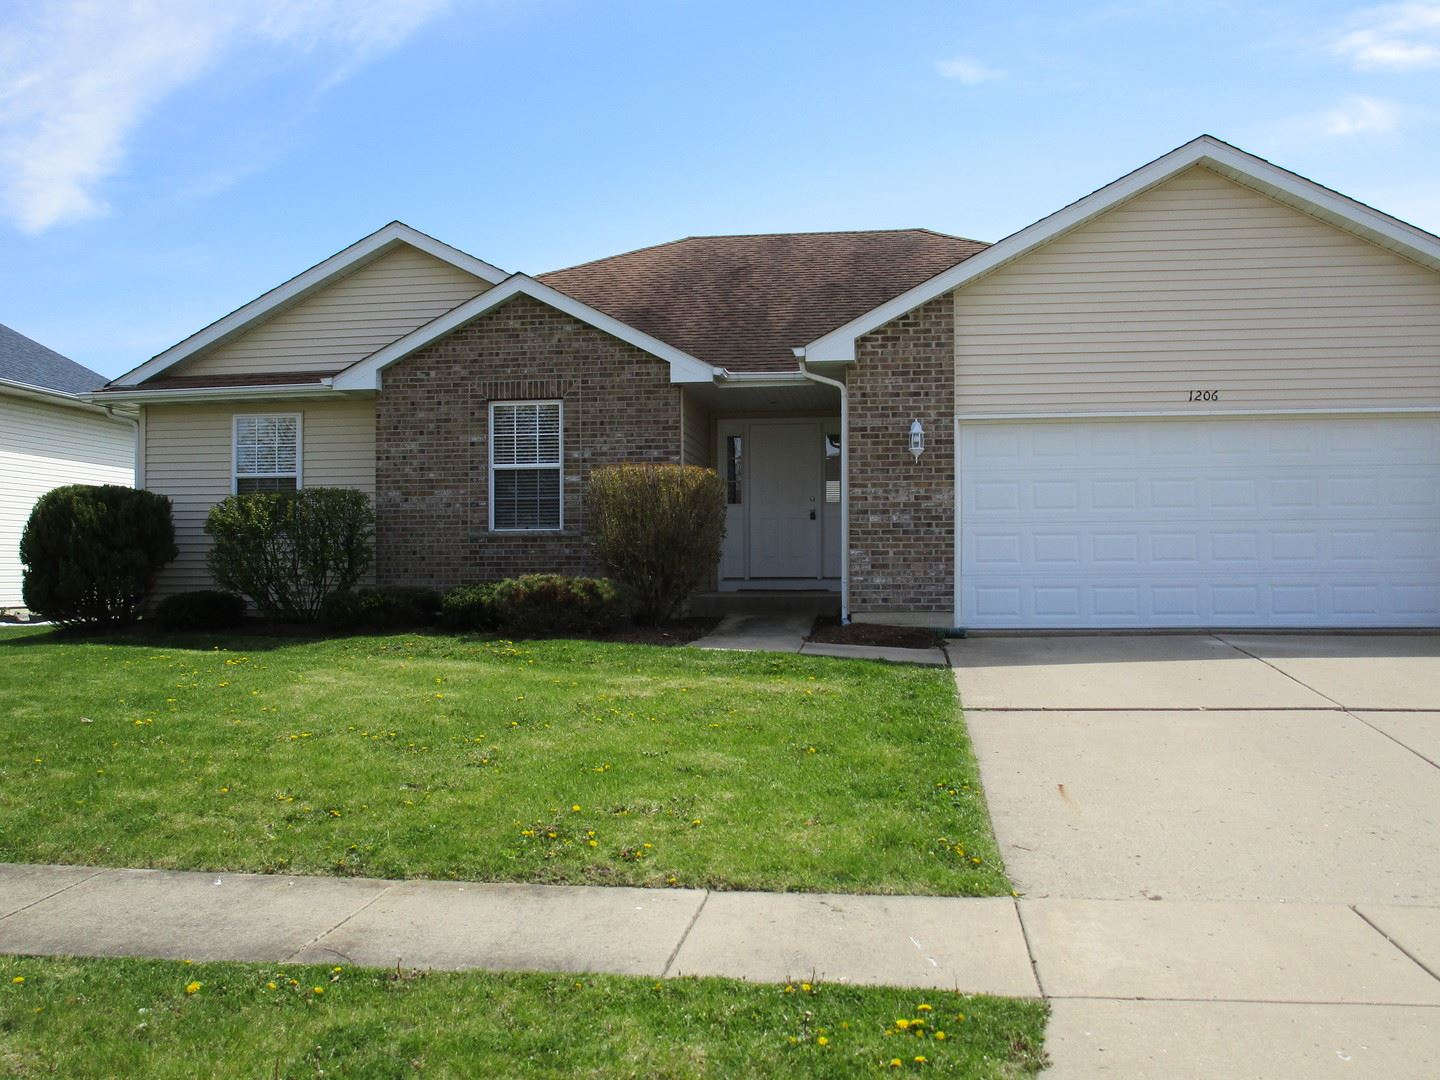 1206 Primrose Lane, Harvard, IL 60033 - #: 10709366